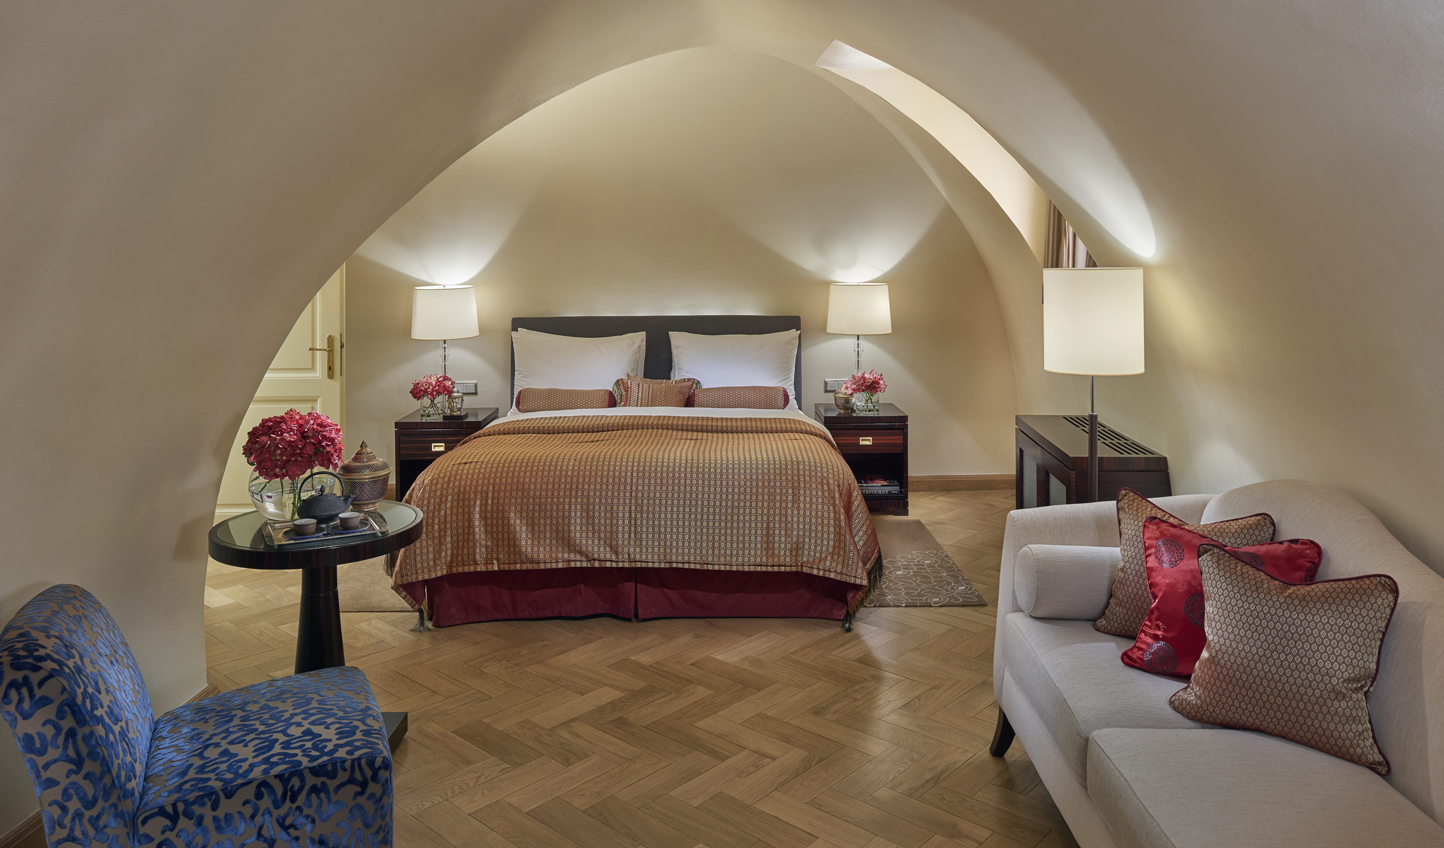 Unique design and vaulted ceilings remind you of the monastic past